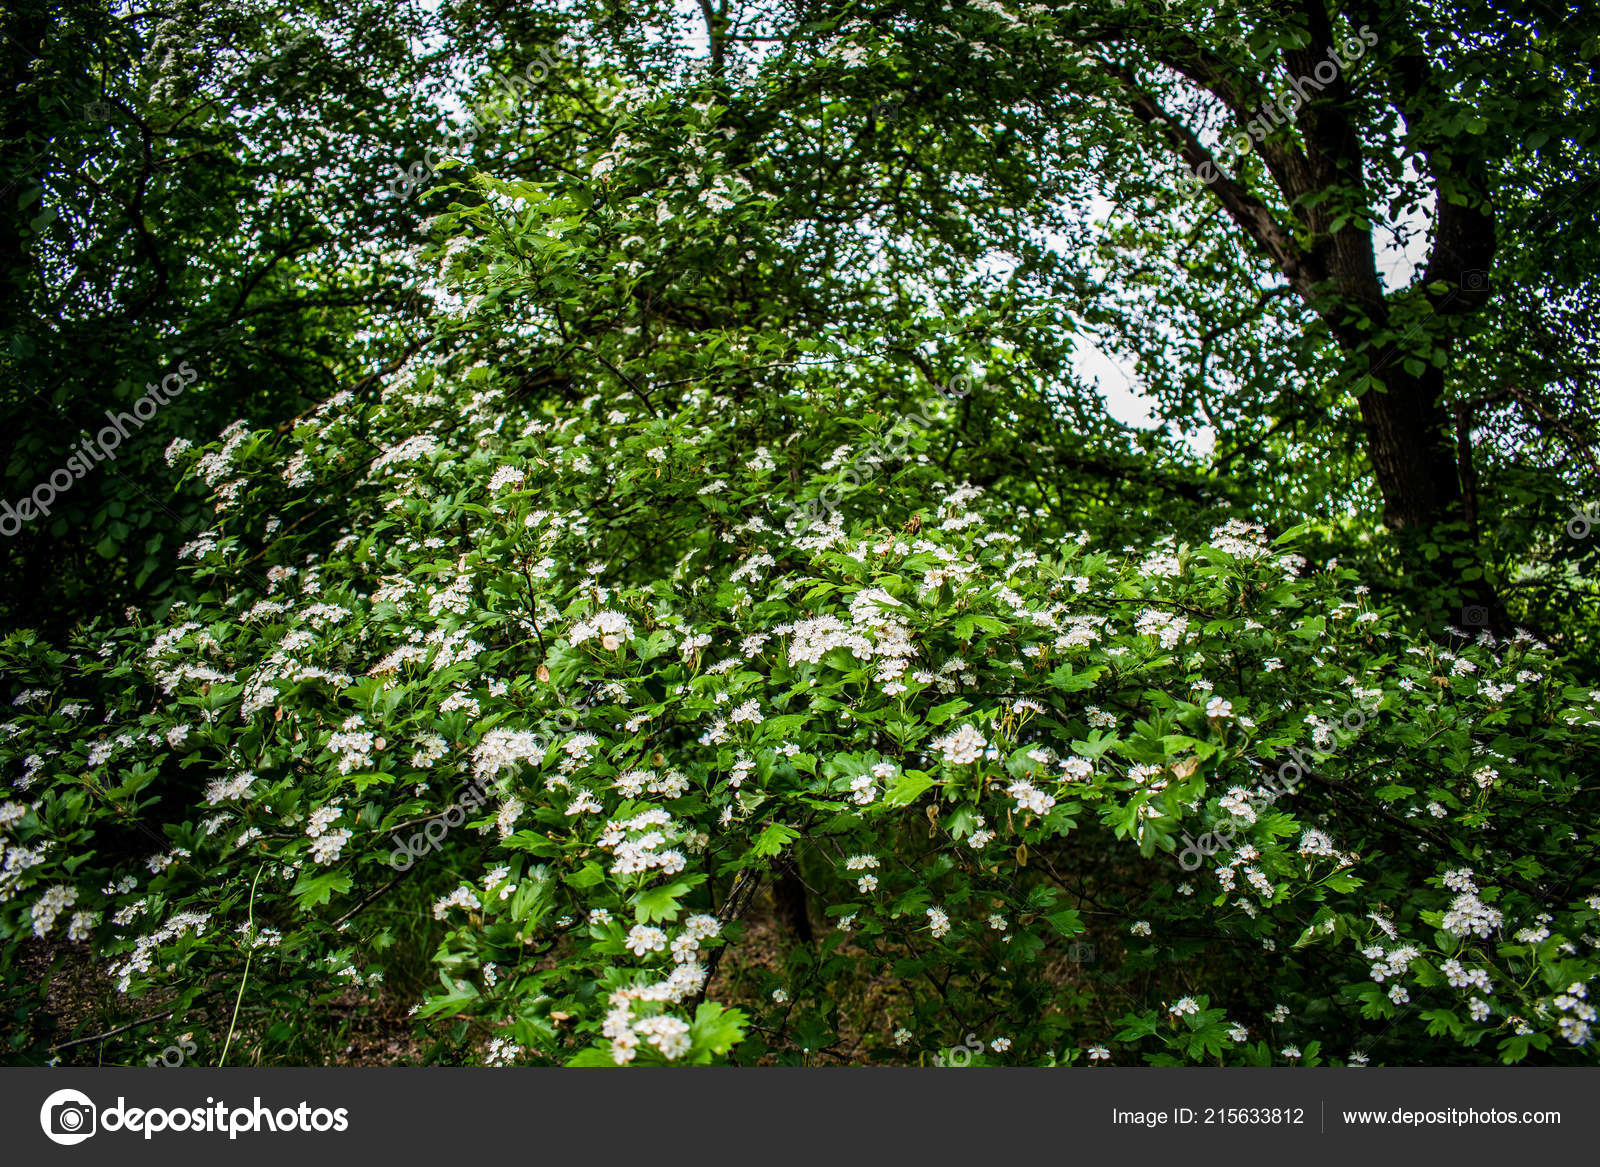 Flowering Tree Big Spring Bush Many Small White Flowers Buds